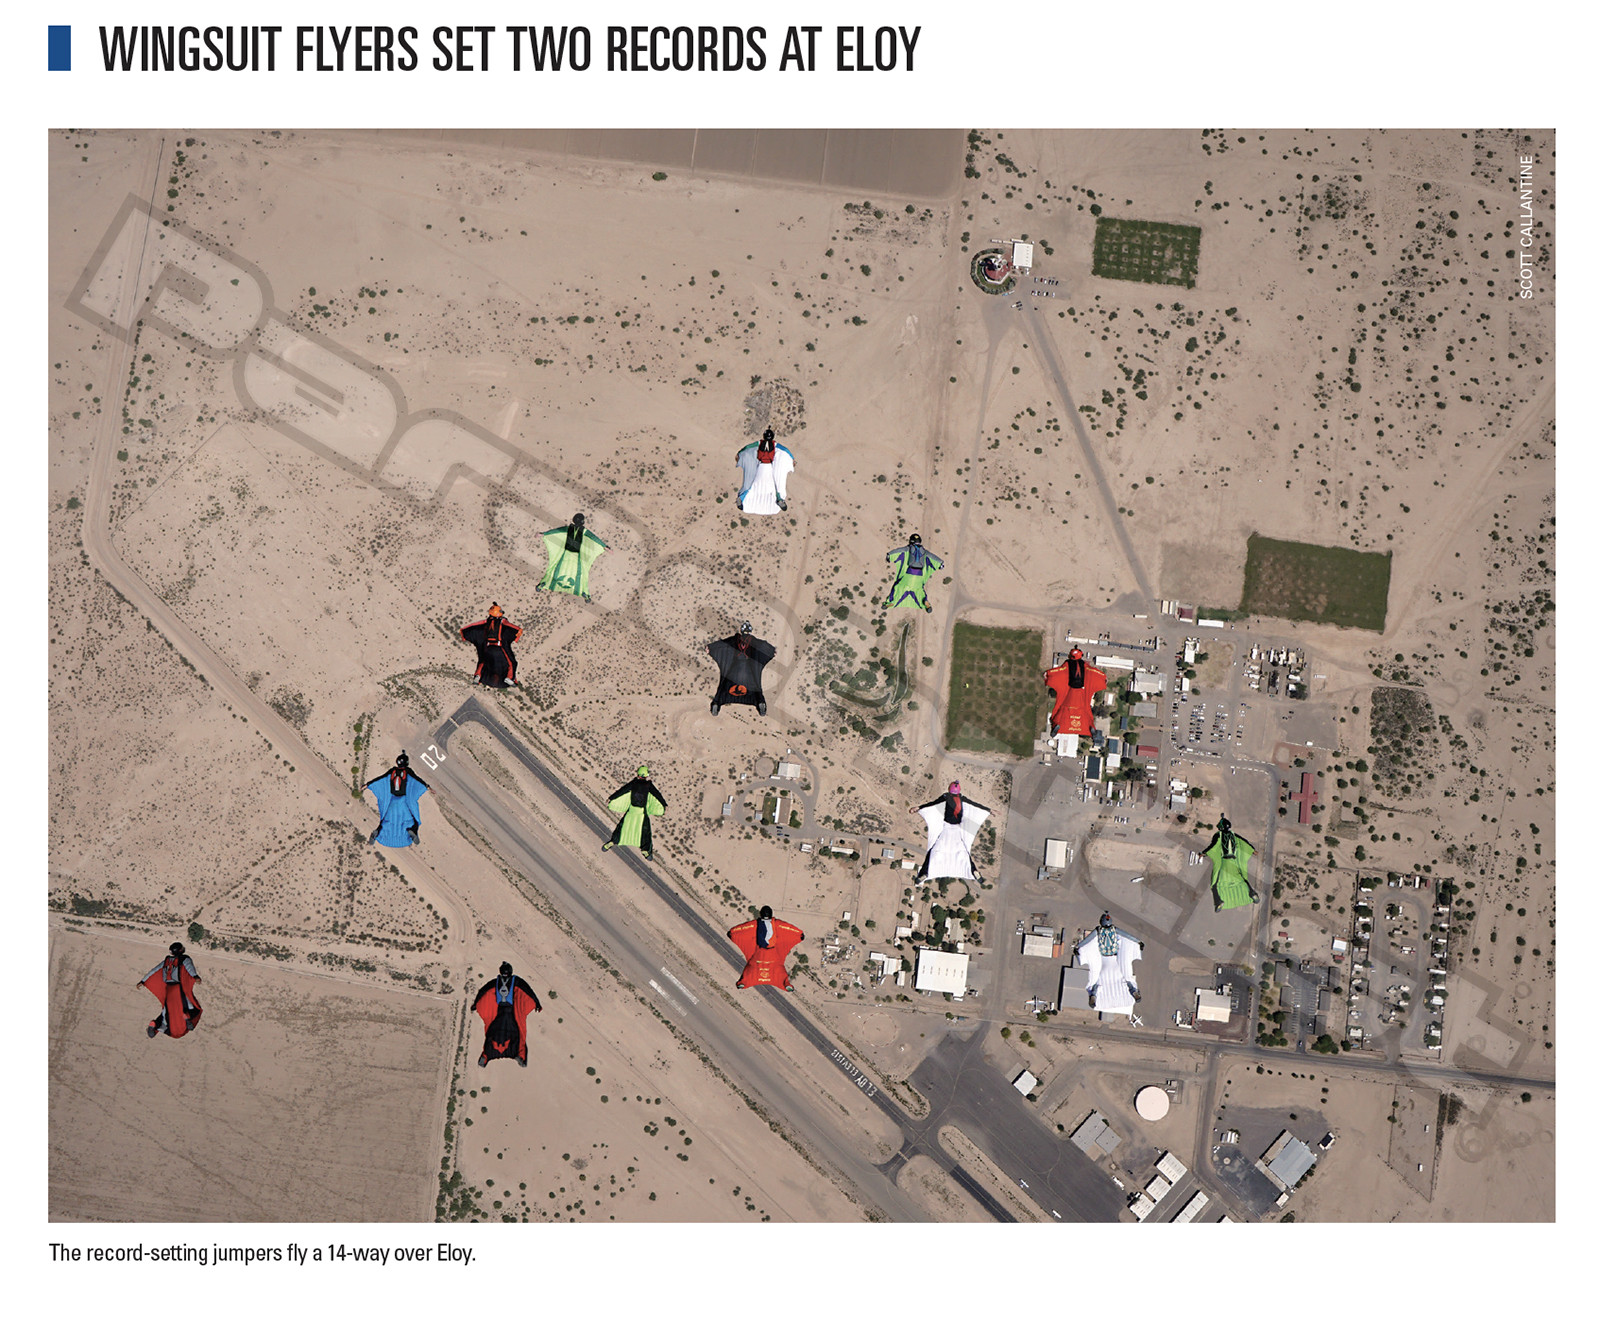 Wingsuit Flyers Set Two Records At Eloy